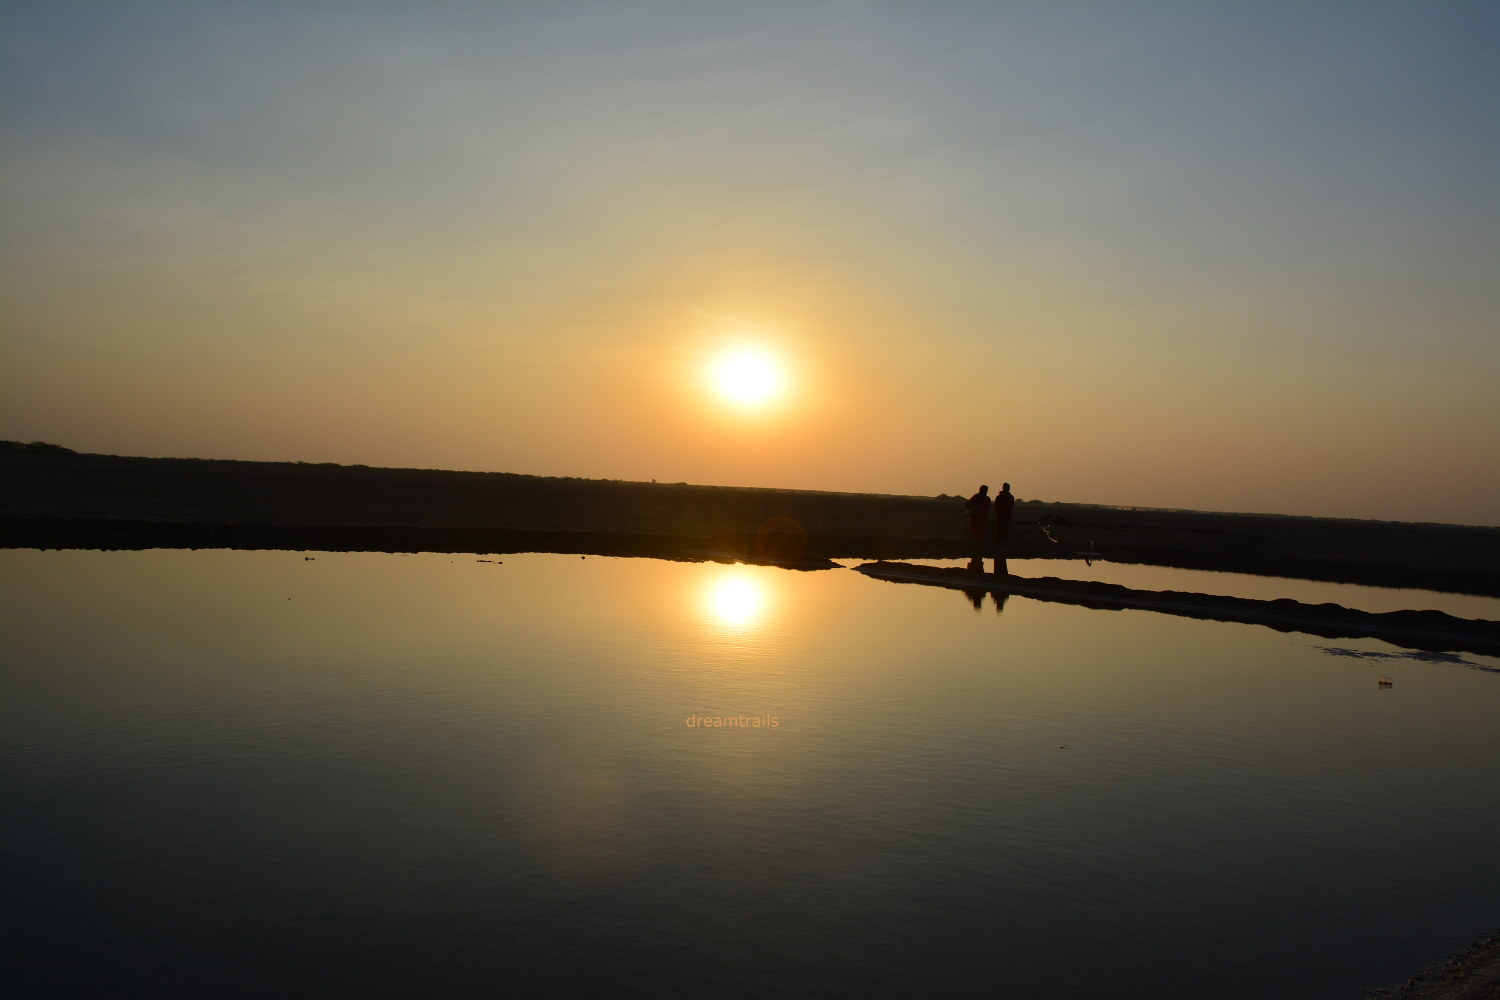 Sunset at Little Rann of Kutch